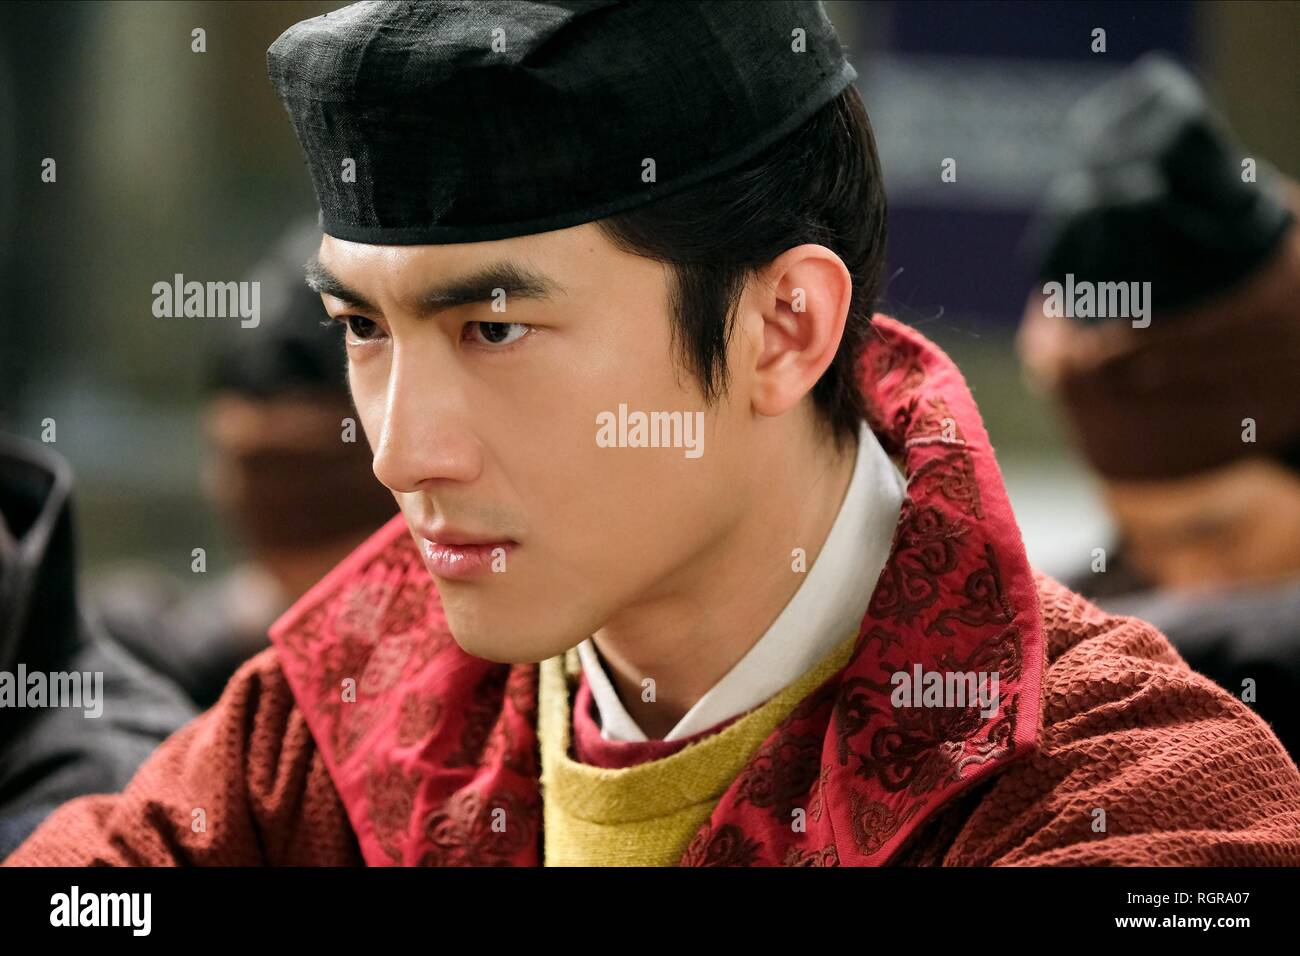 KENNY LIN DETECTIVE DEE: THE FOUR HEAVENLY KINGS; DI RENJIE ZHI SIDATIANWANG (2018) - Stock Image